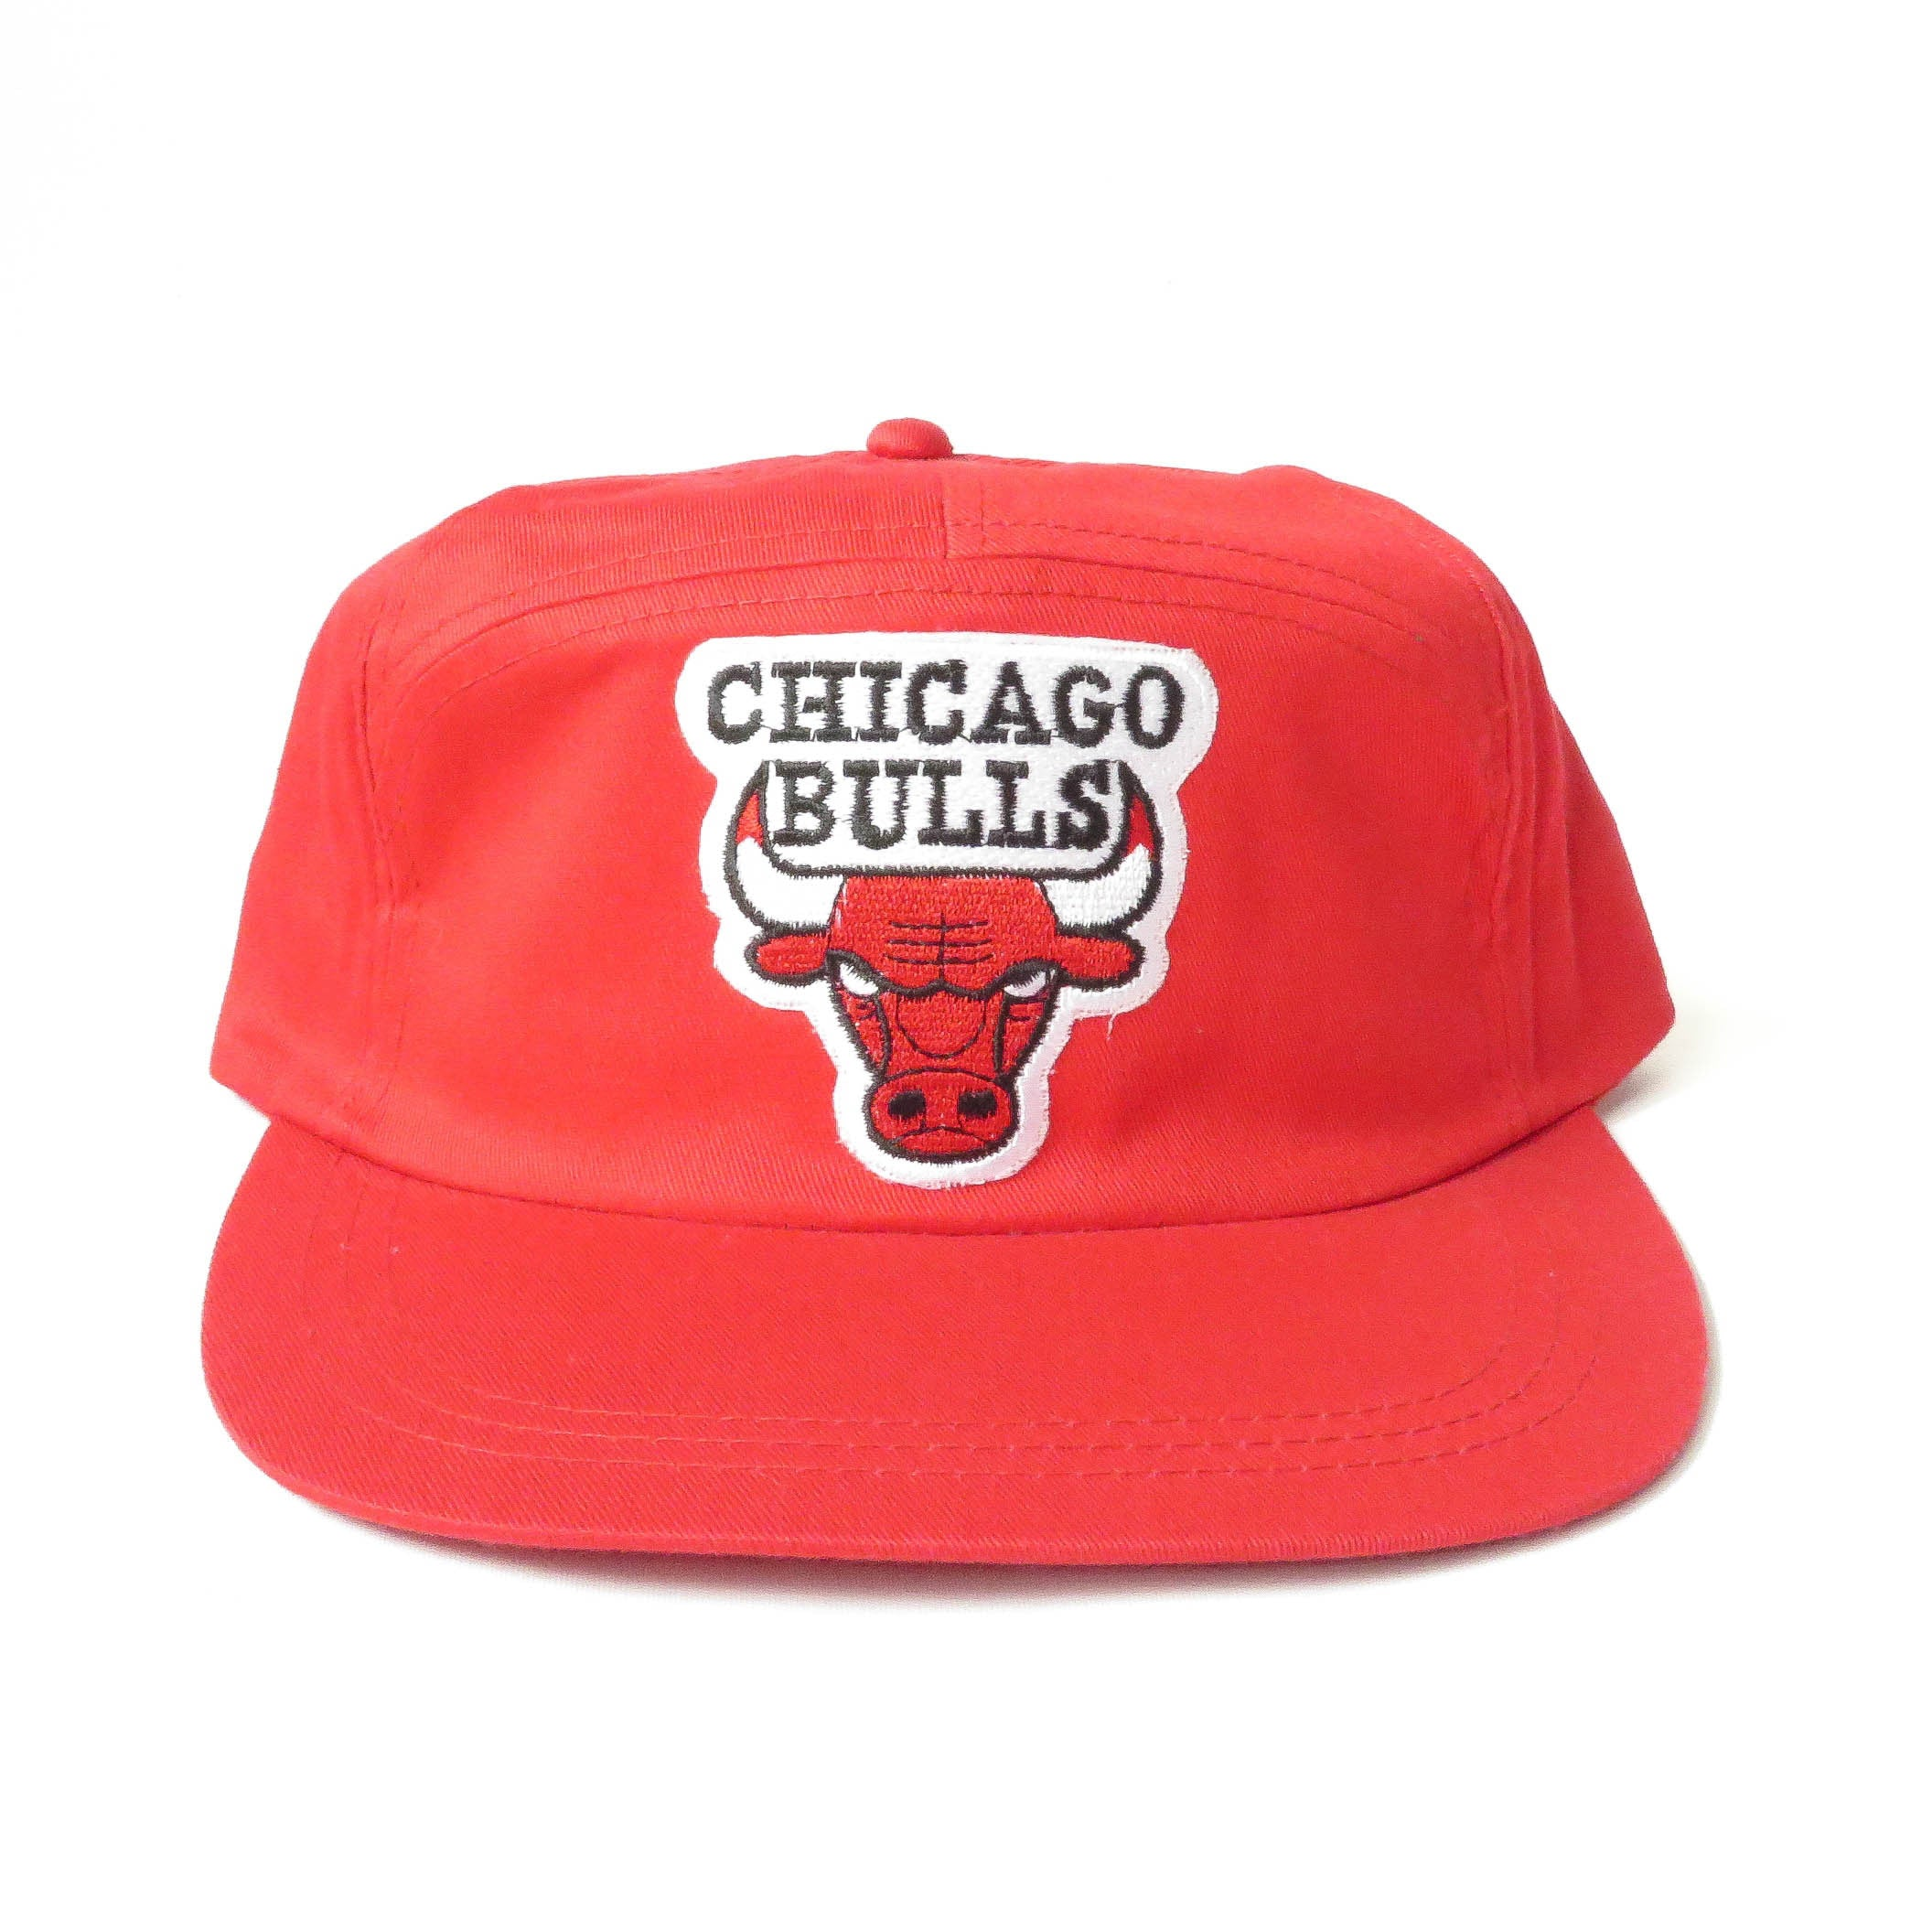 Vintage Chicago Bulls 5-Panel Snapback Hat